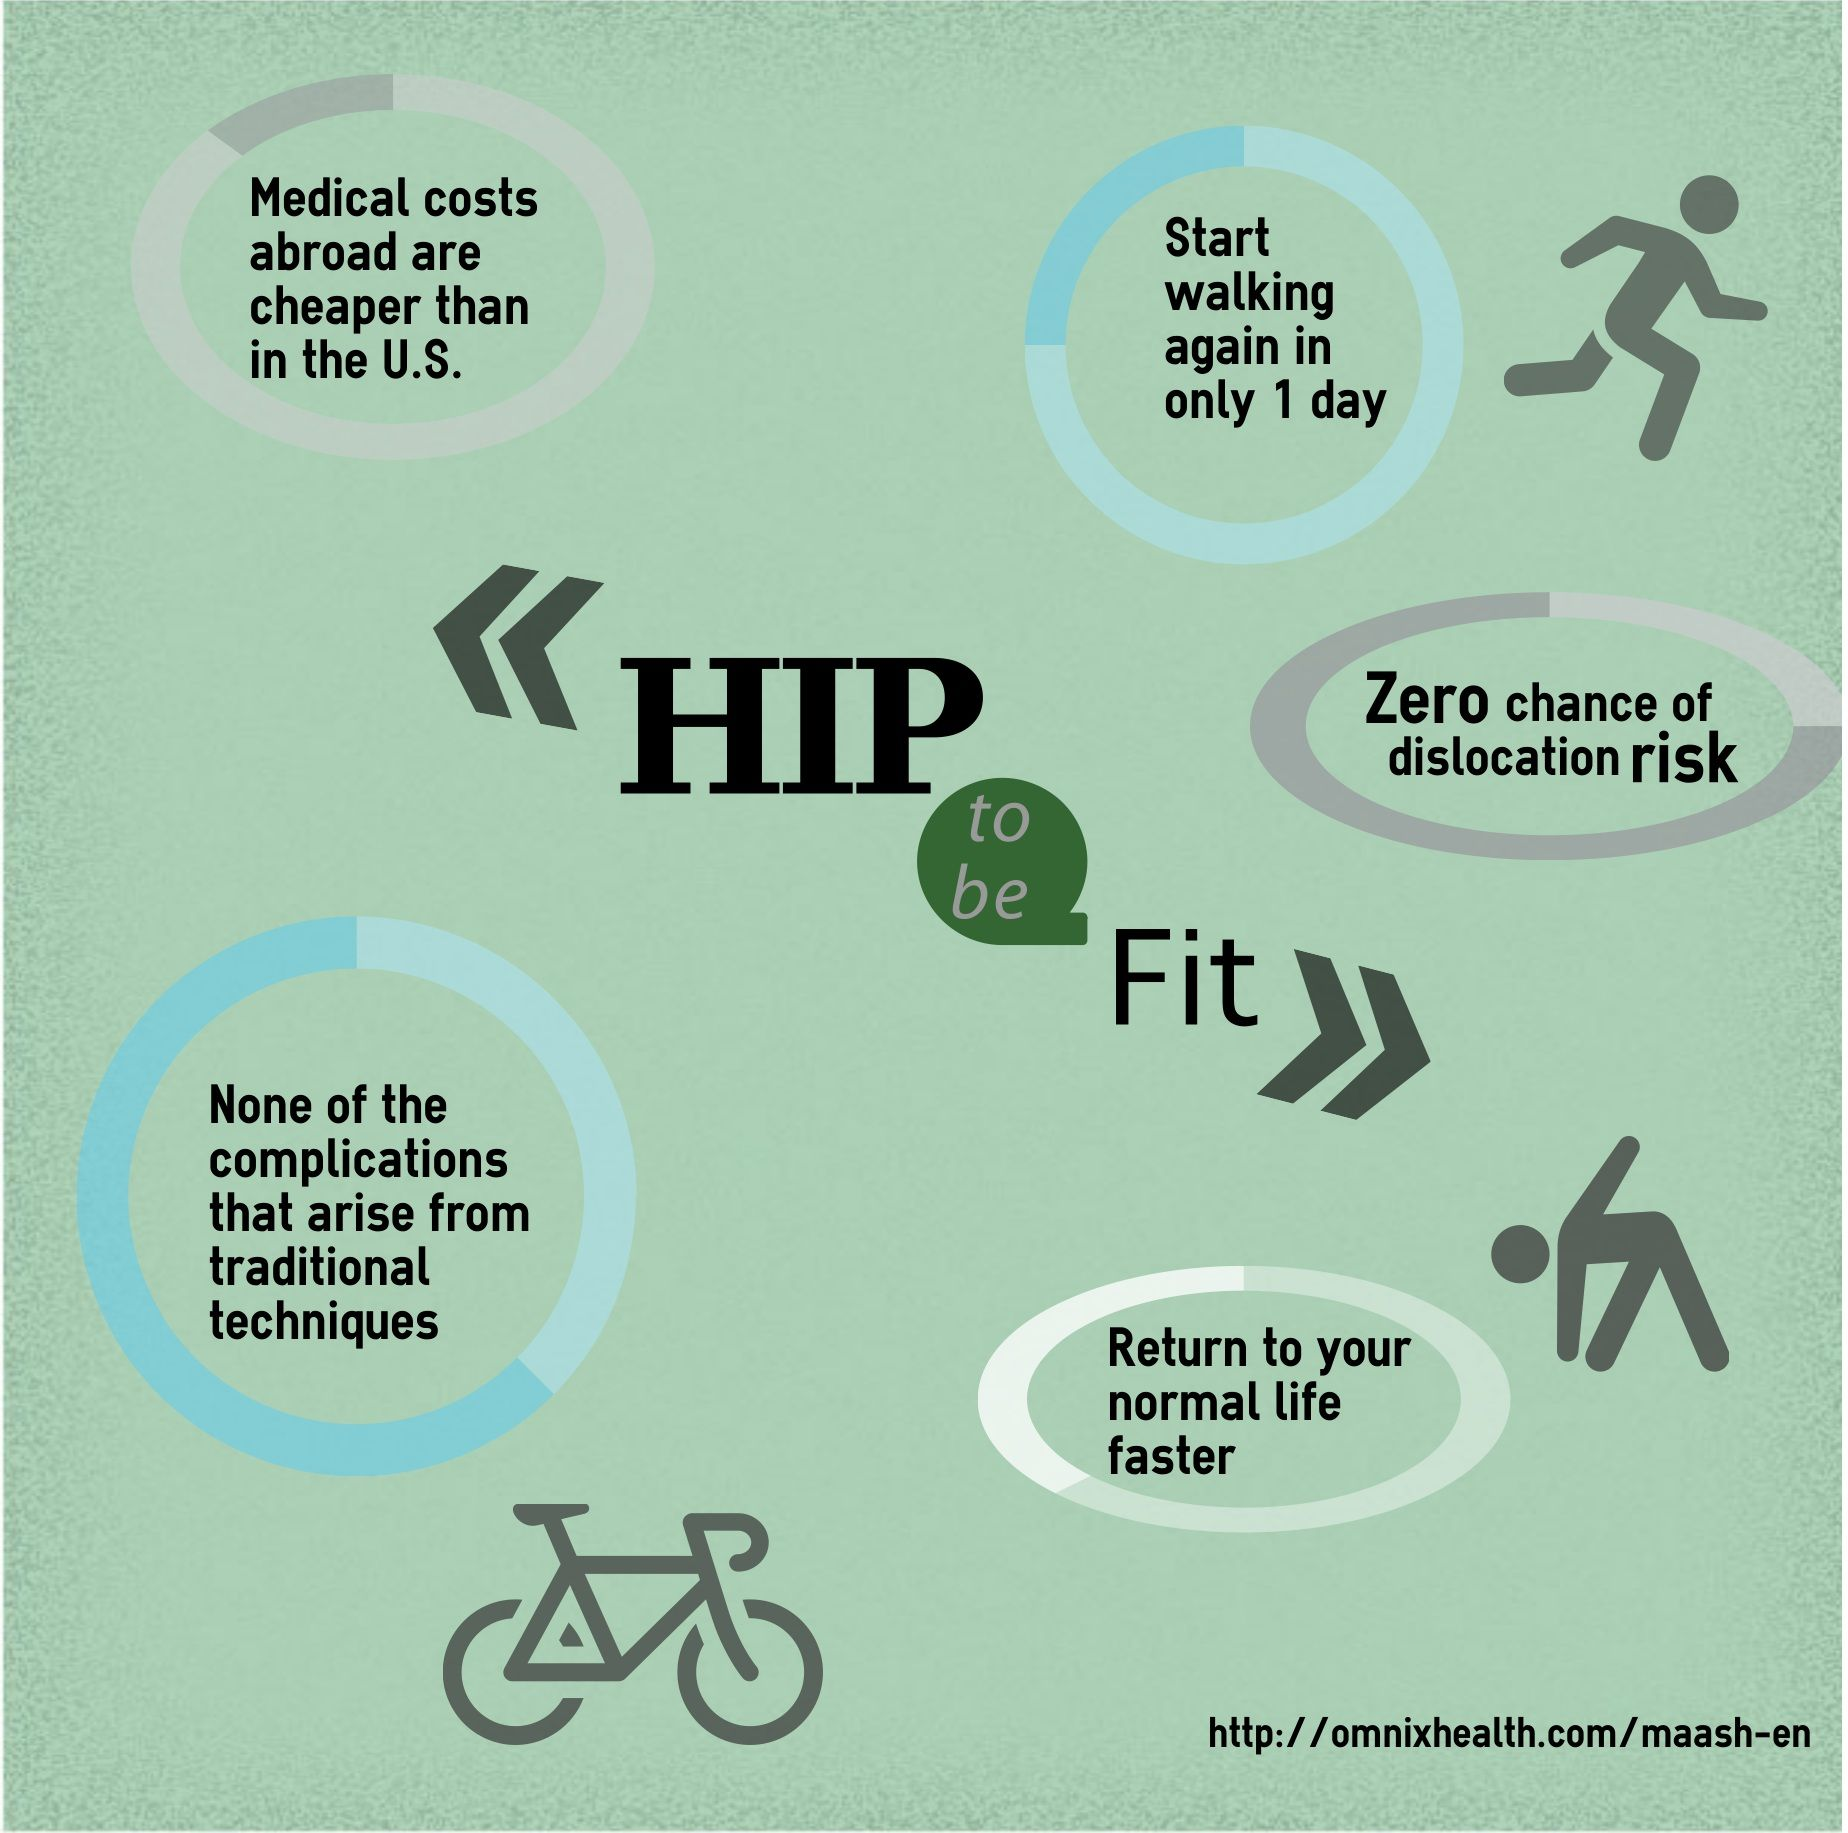 There Are So Many Health Benefits To A Speedy Recovery From Hip Surgery The Maash Technique Is The Only One With P Hip Replacement Surgery Hip Surgery Surgery